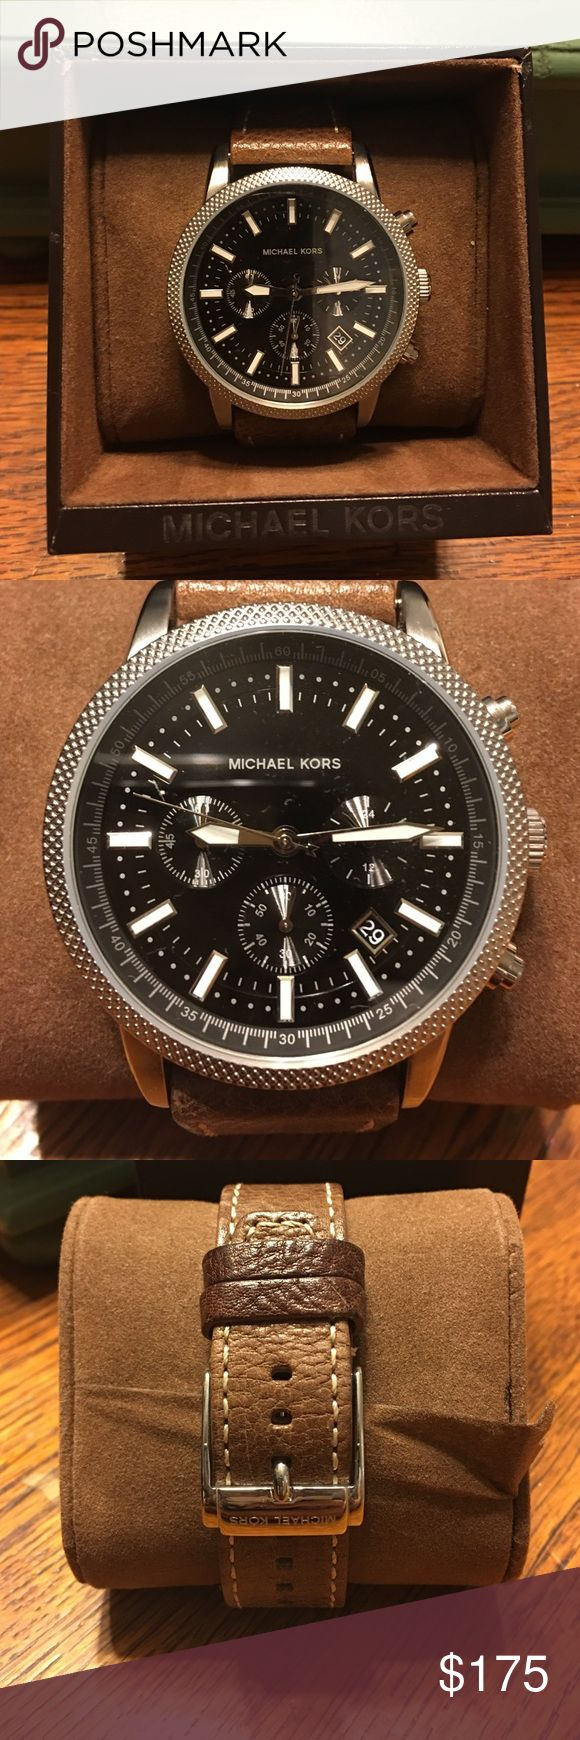 Michael Kors Men's Watch Worn three times. Great condition. Comes with original box and booklet Michael Kors Accessories Watches